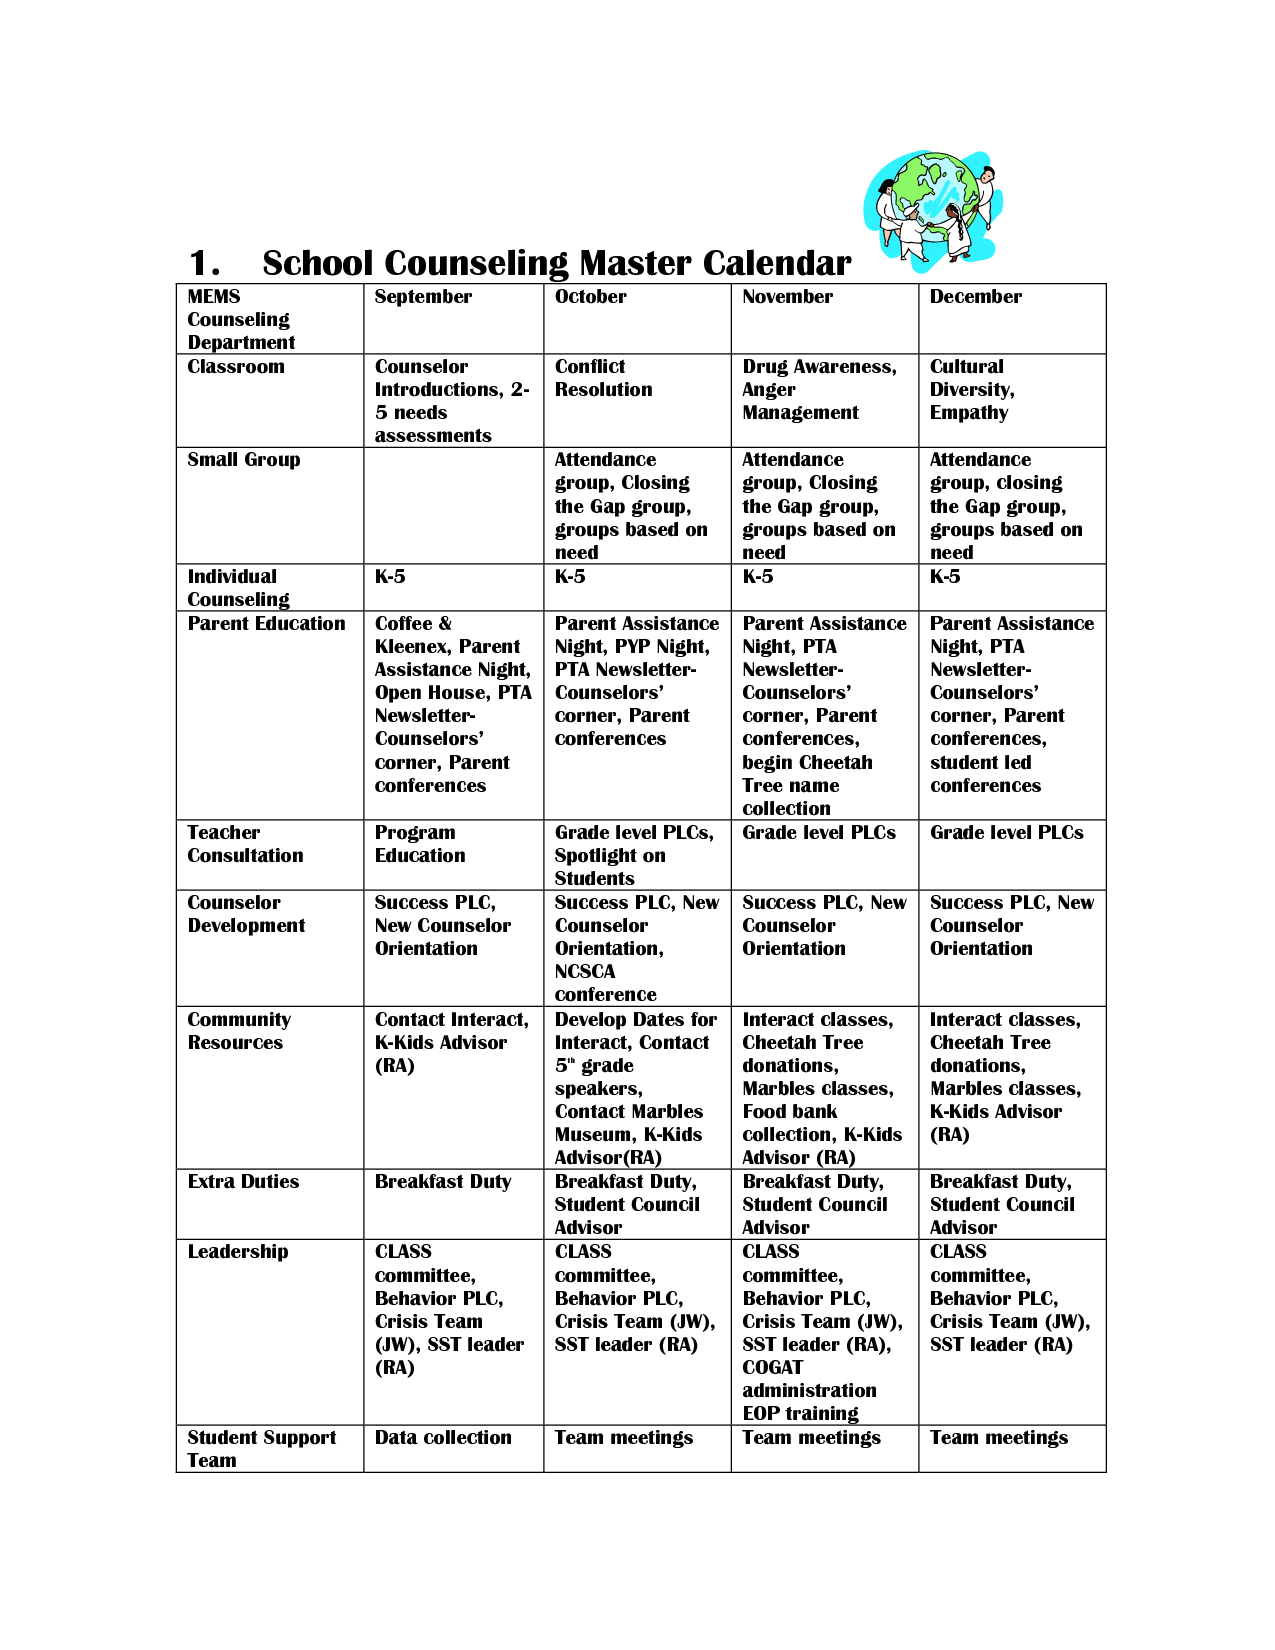 Scope Of Work Template  School Counseling